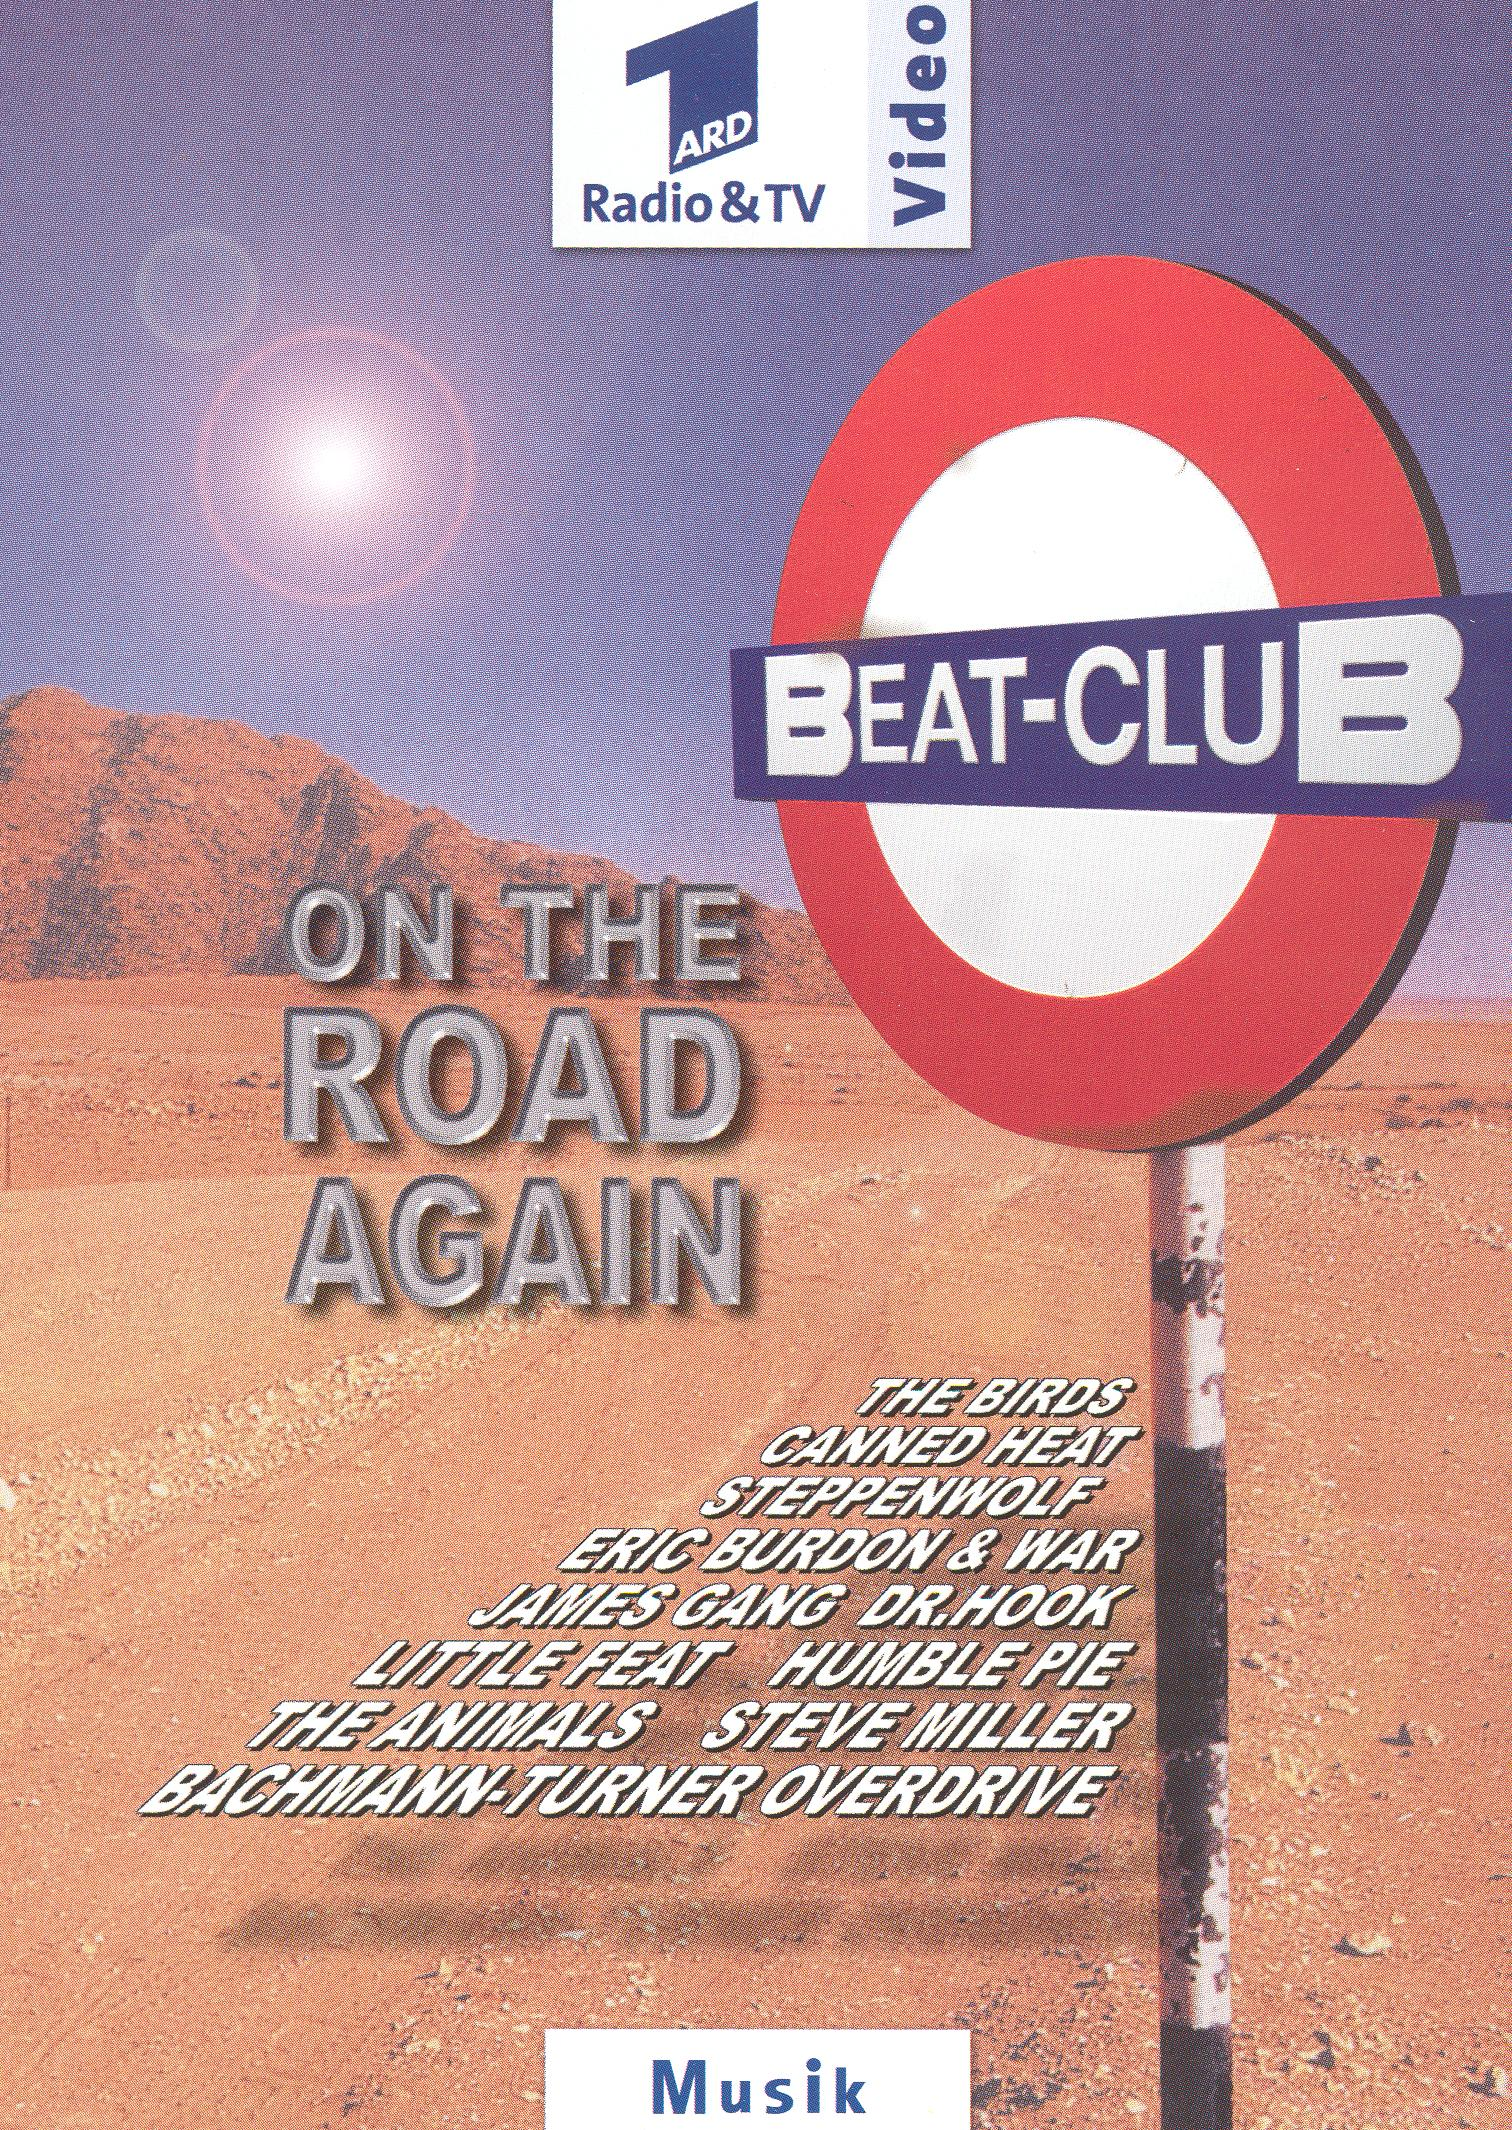 The Beat-Club: On the Road Again